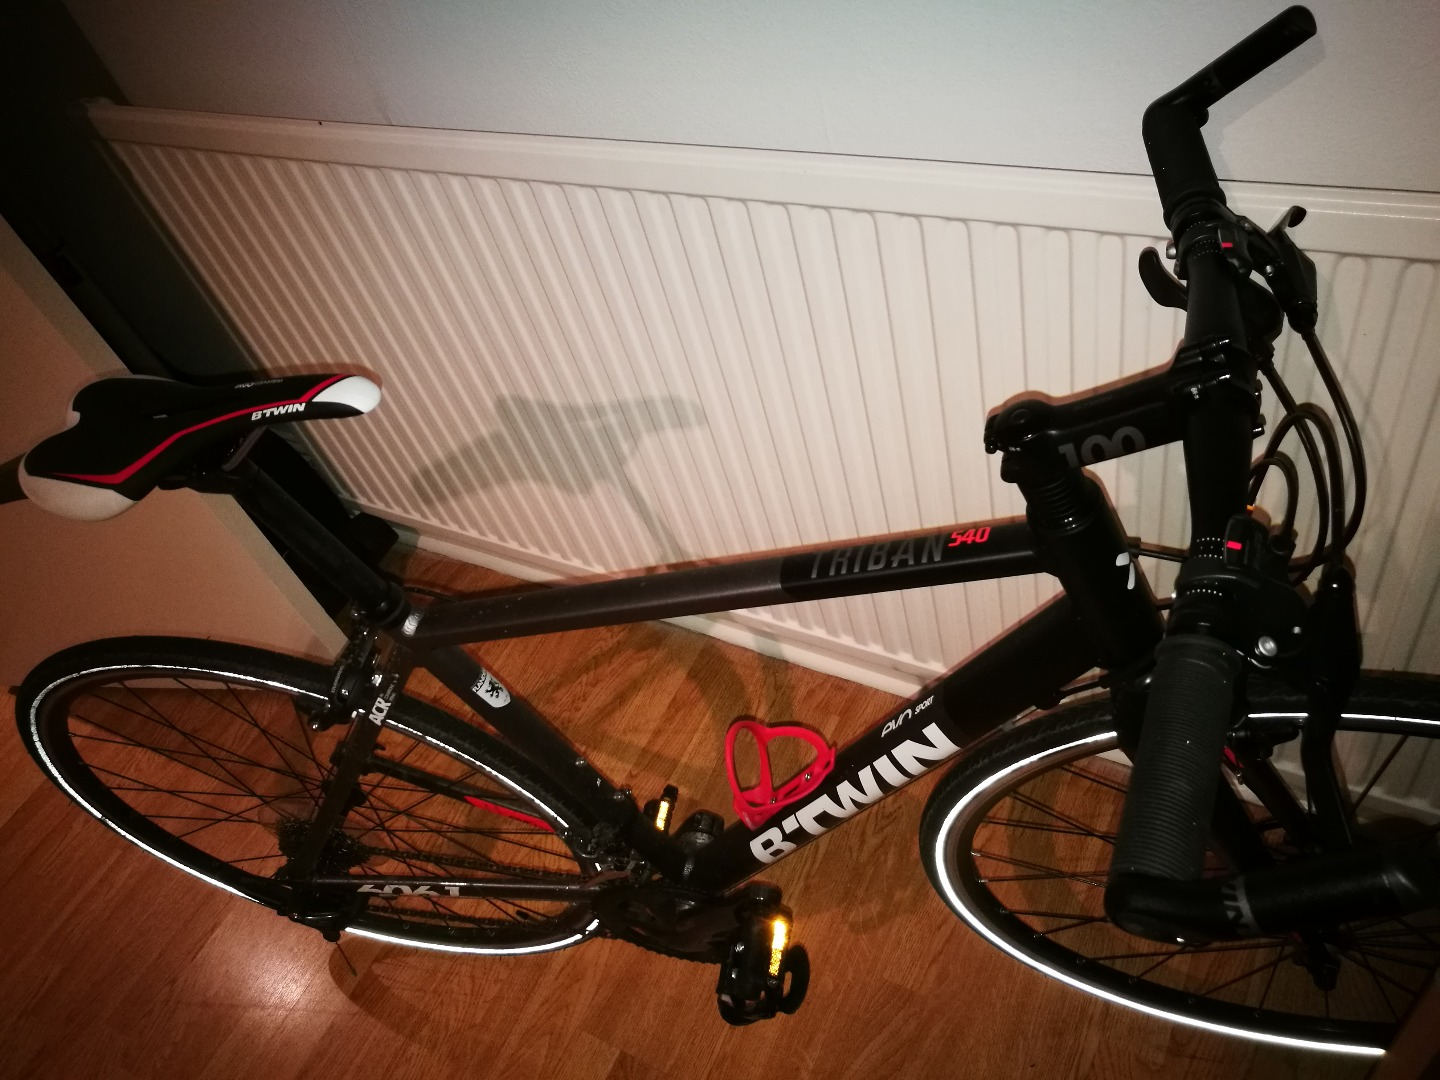 Stolen Btwin Triban 540 flat bar